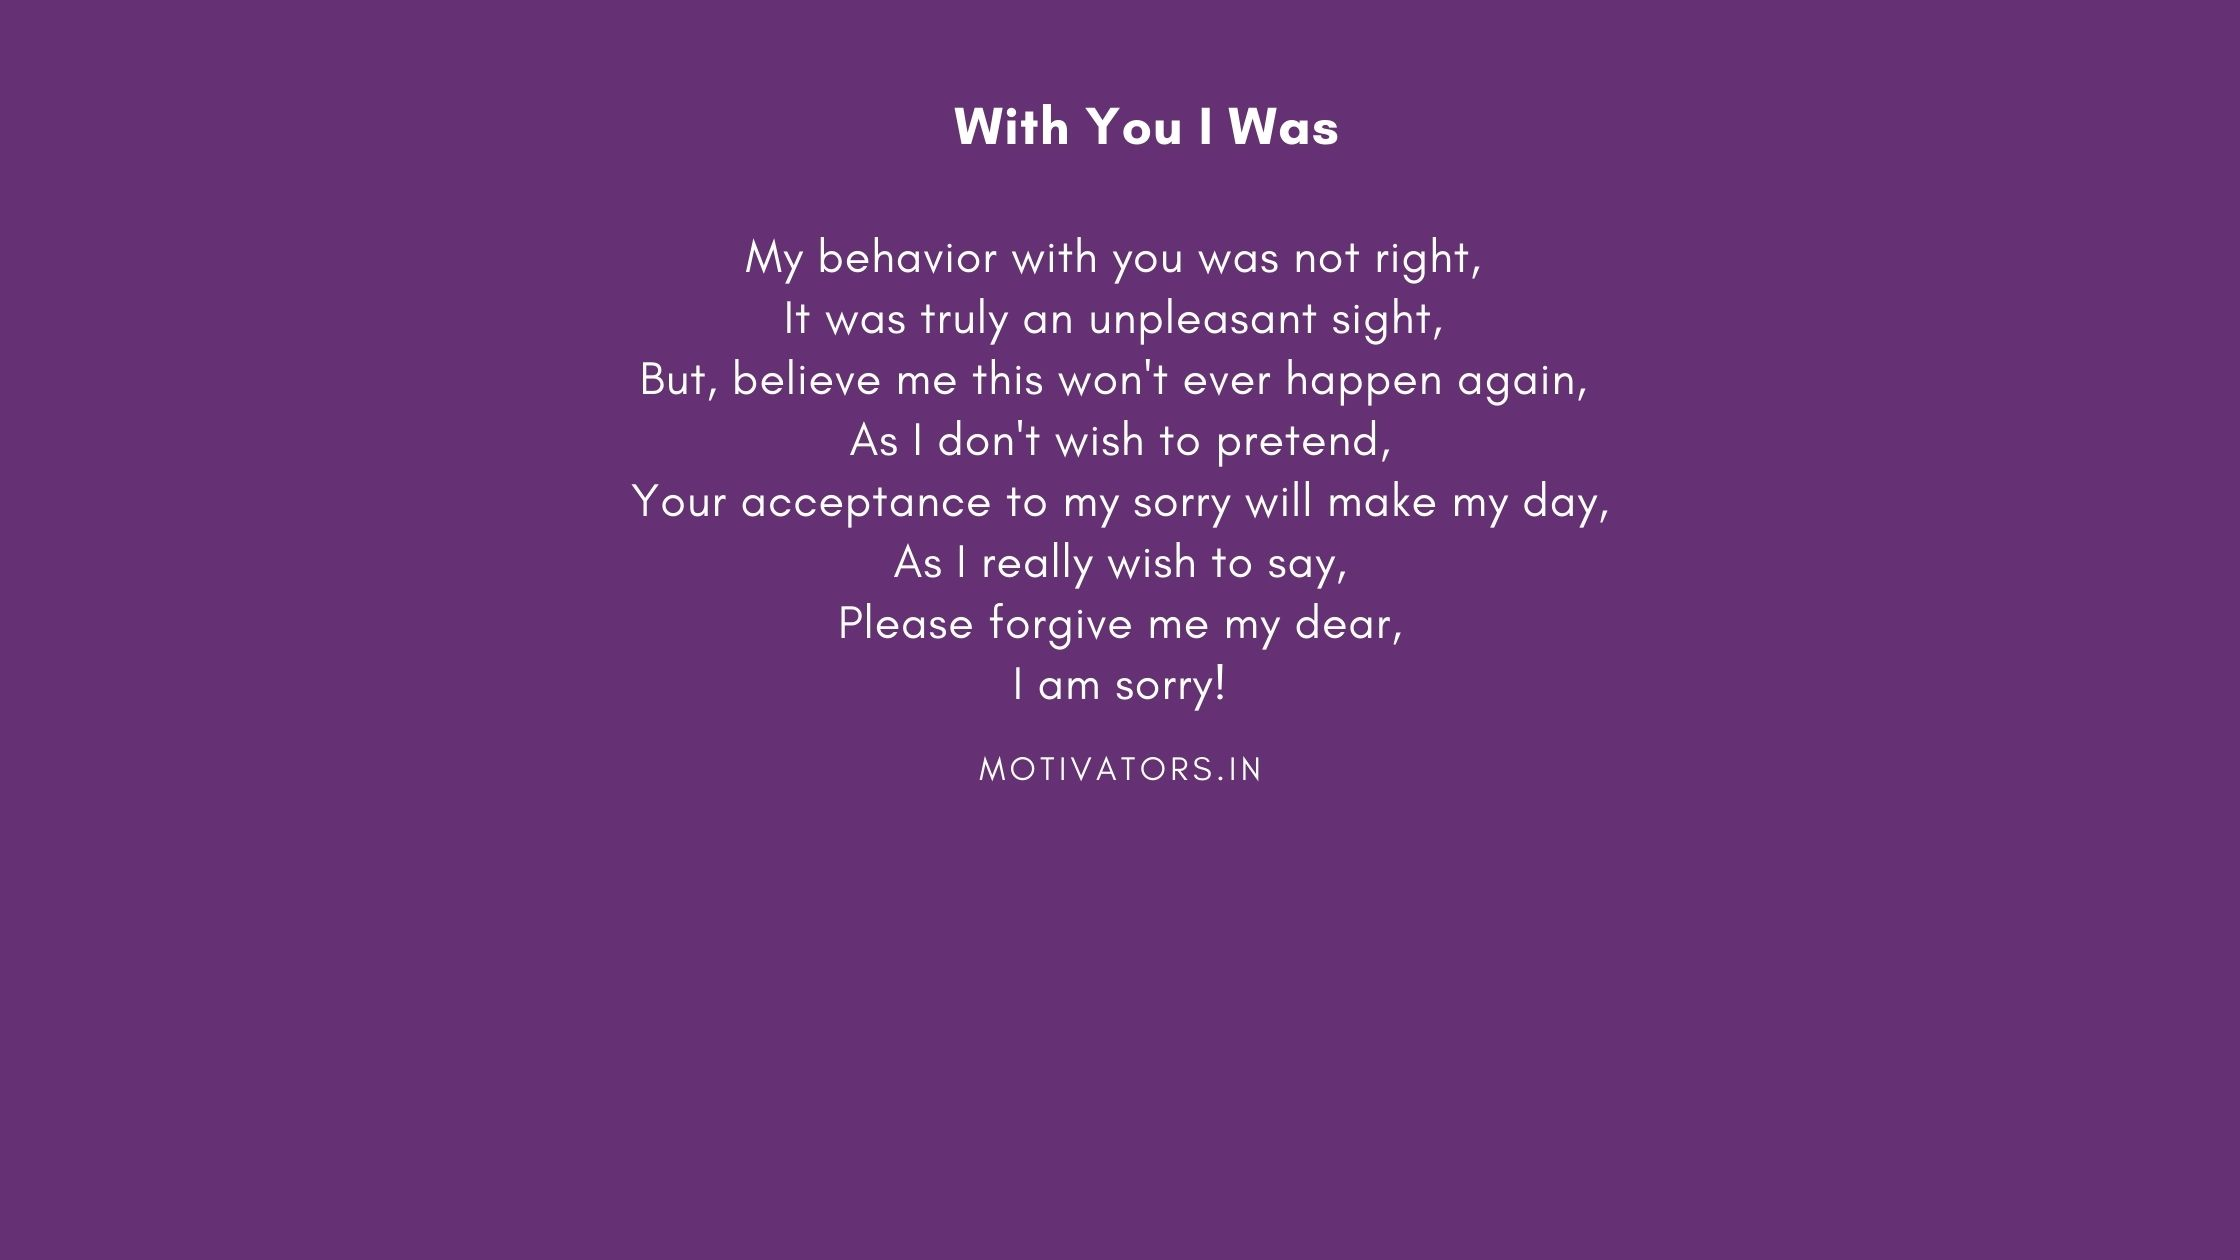 With You I Was